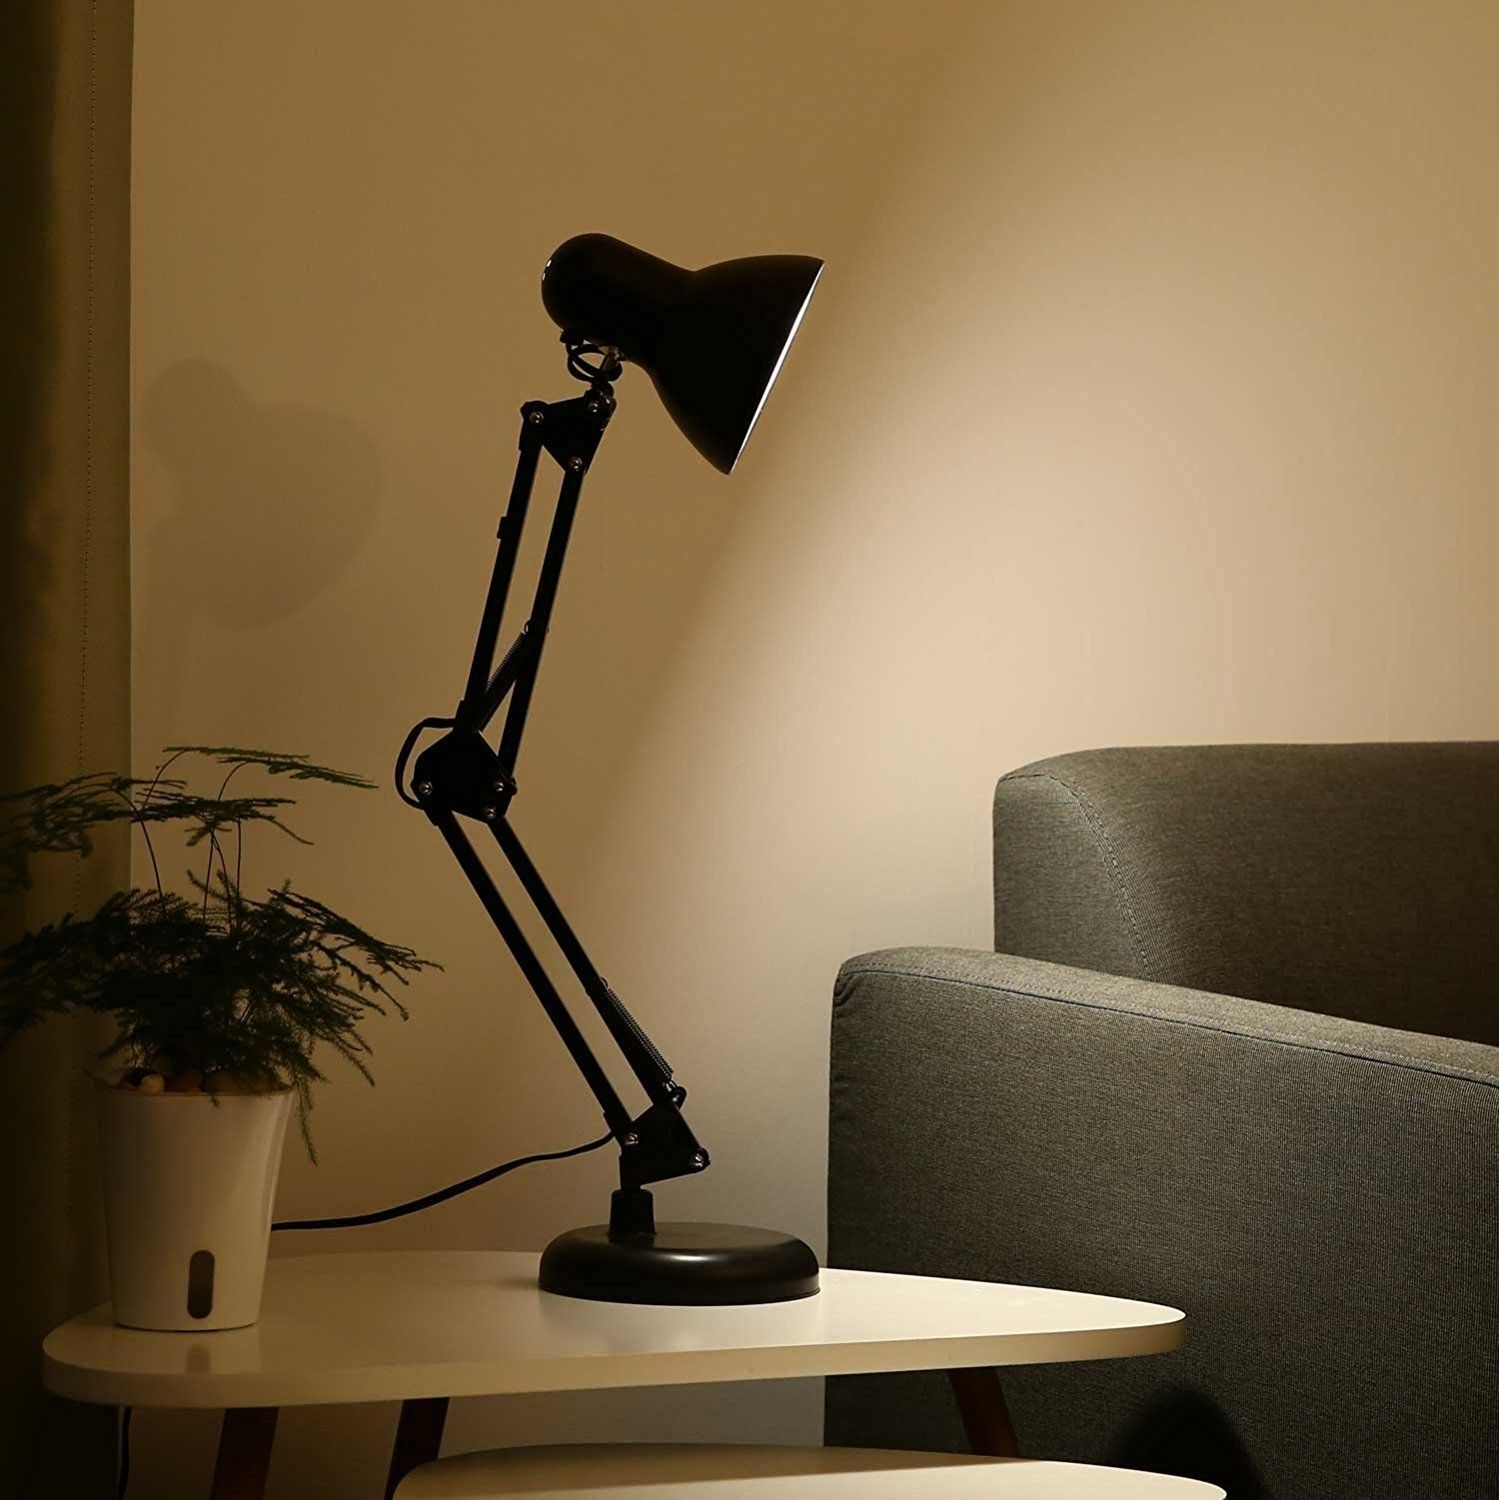 archi tect Lamp for Office//Home//Dorm Blac Table Lamp Extra LED Bulb /& Clamp Metal Structure Adjustable Shade posizione wafting Swing Arm Desk Lamp